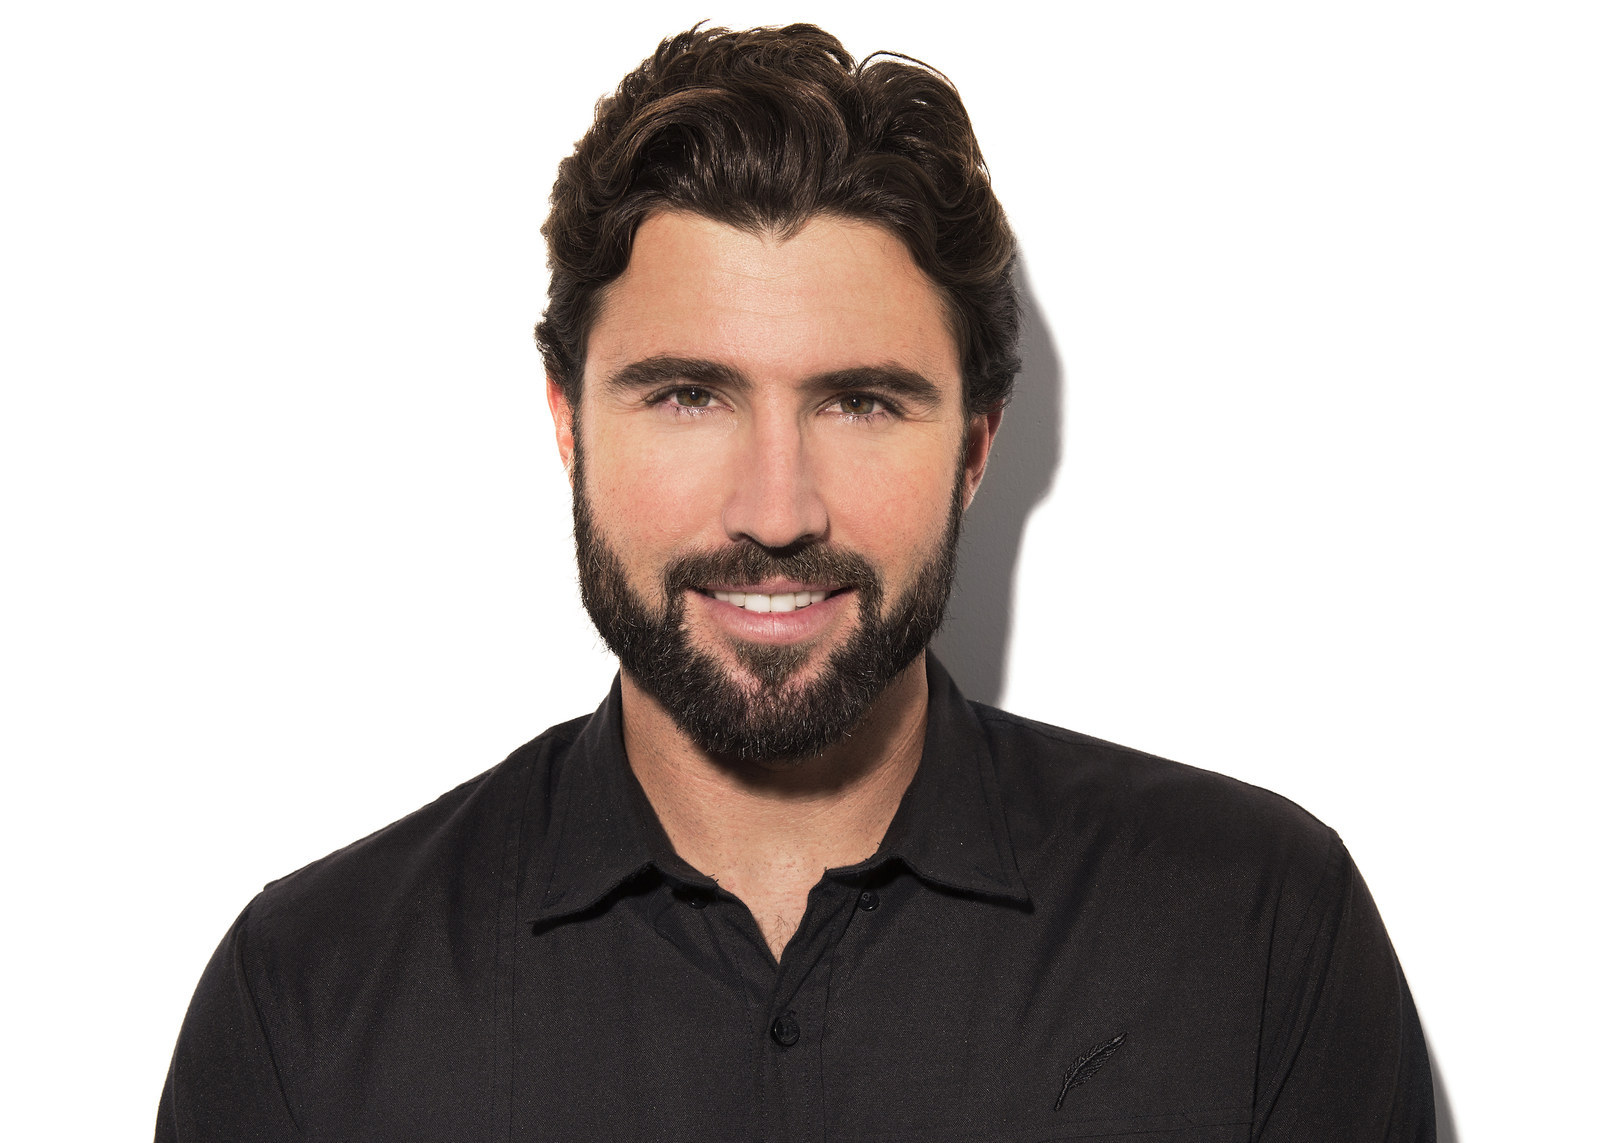 Brody Jenner Answers 25 Questions About Love, Sex, And Relationships